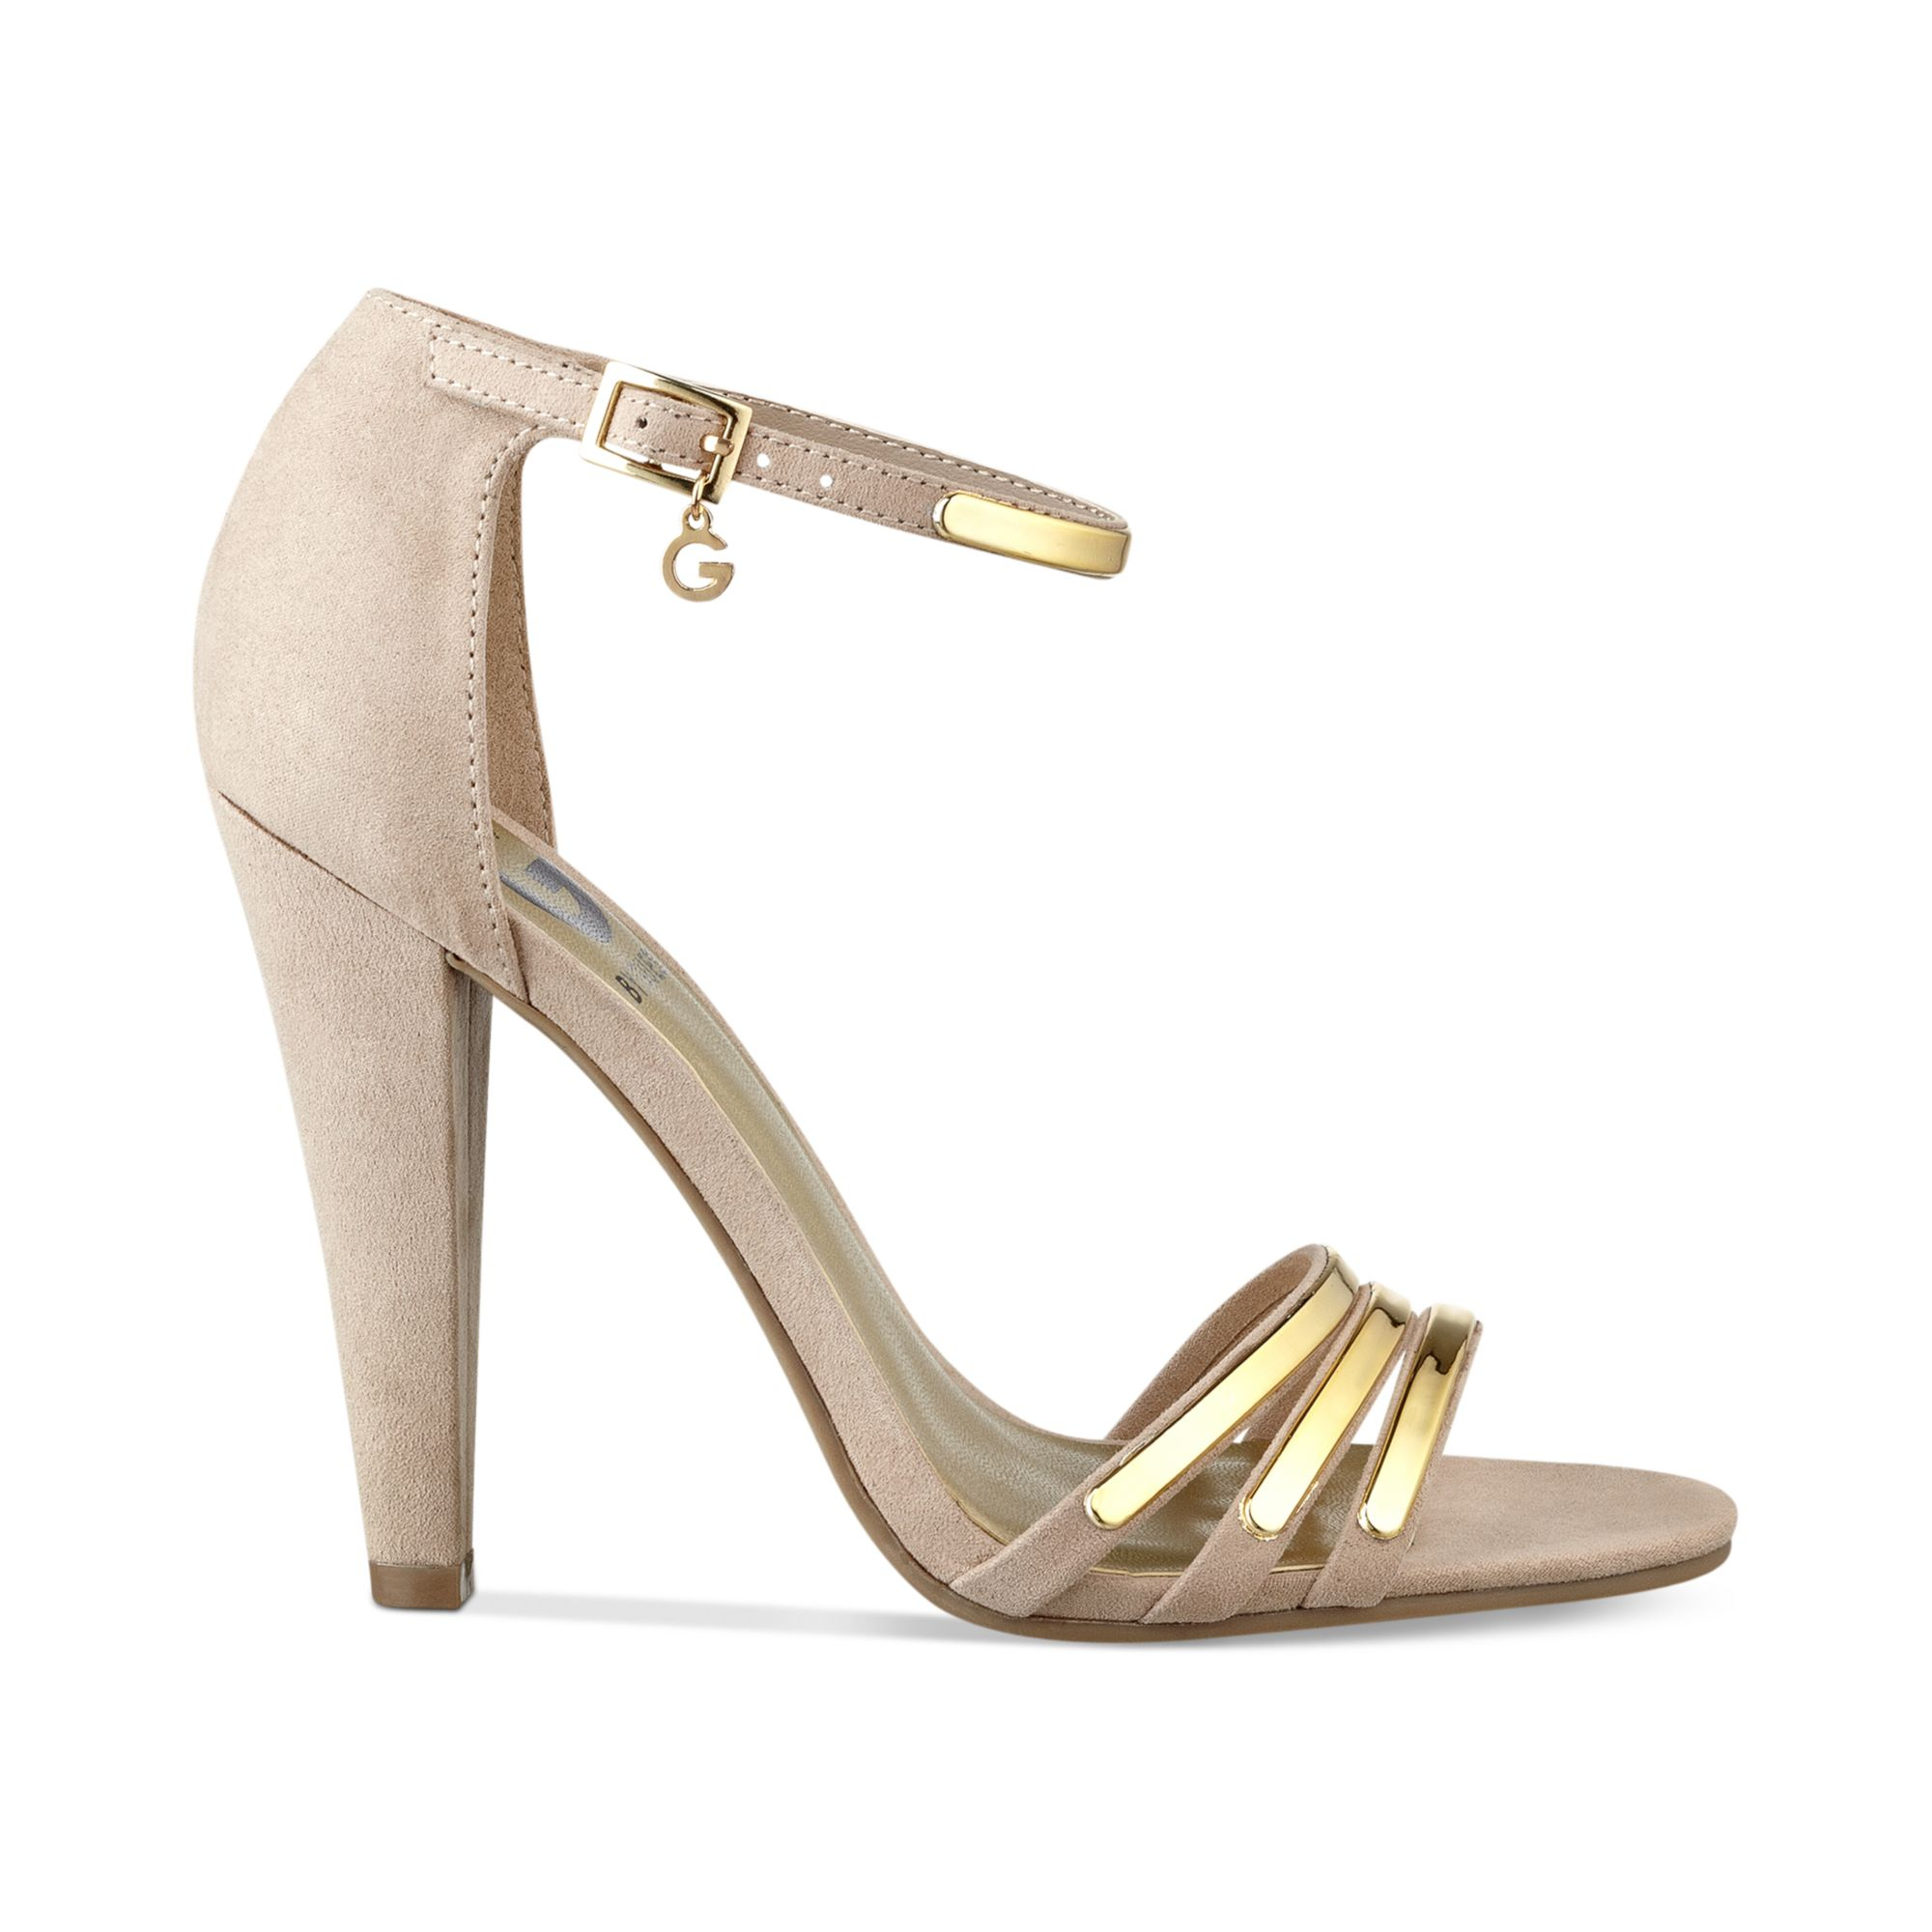 Lastest Welcome The Warm Weather Months With These Amazing Dart Platform Wedge Sandals From G By Guess They Are Super Comfortable And Easy To Style Pair Them With Bow Tailored Shorts And A Loose Chiffon Top, Or With A Flounce Dress For A